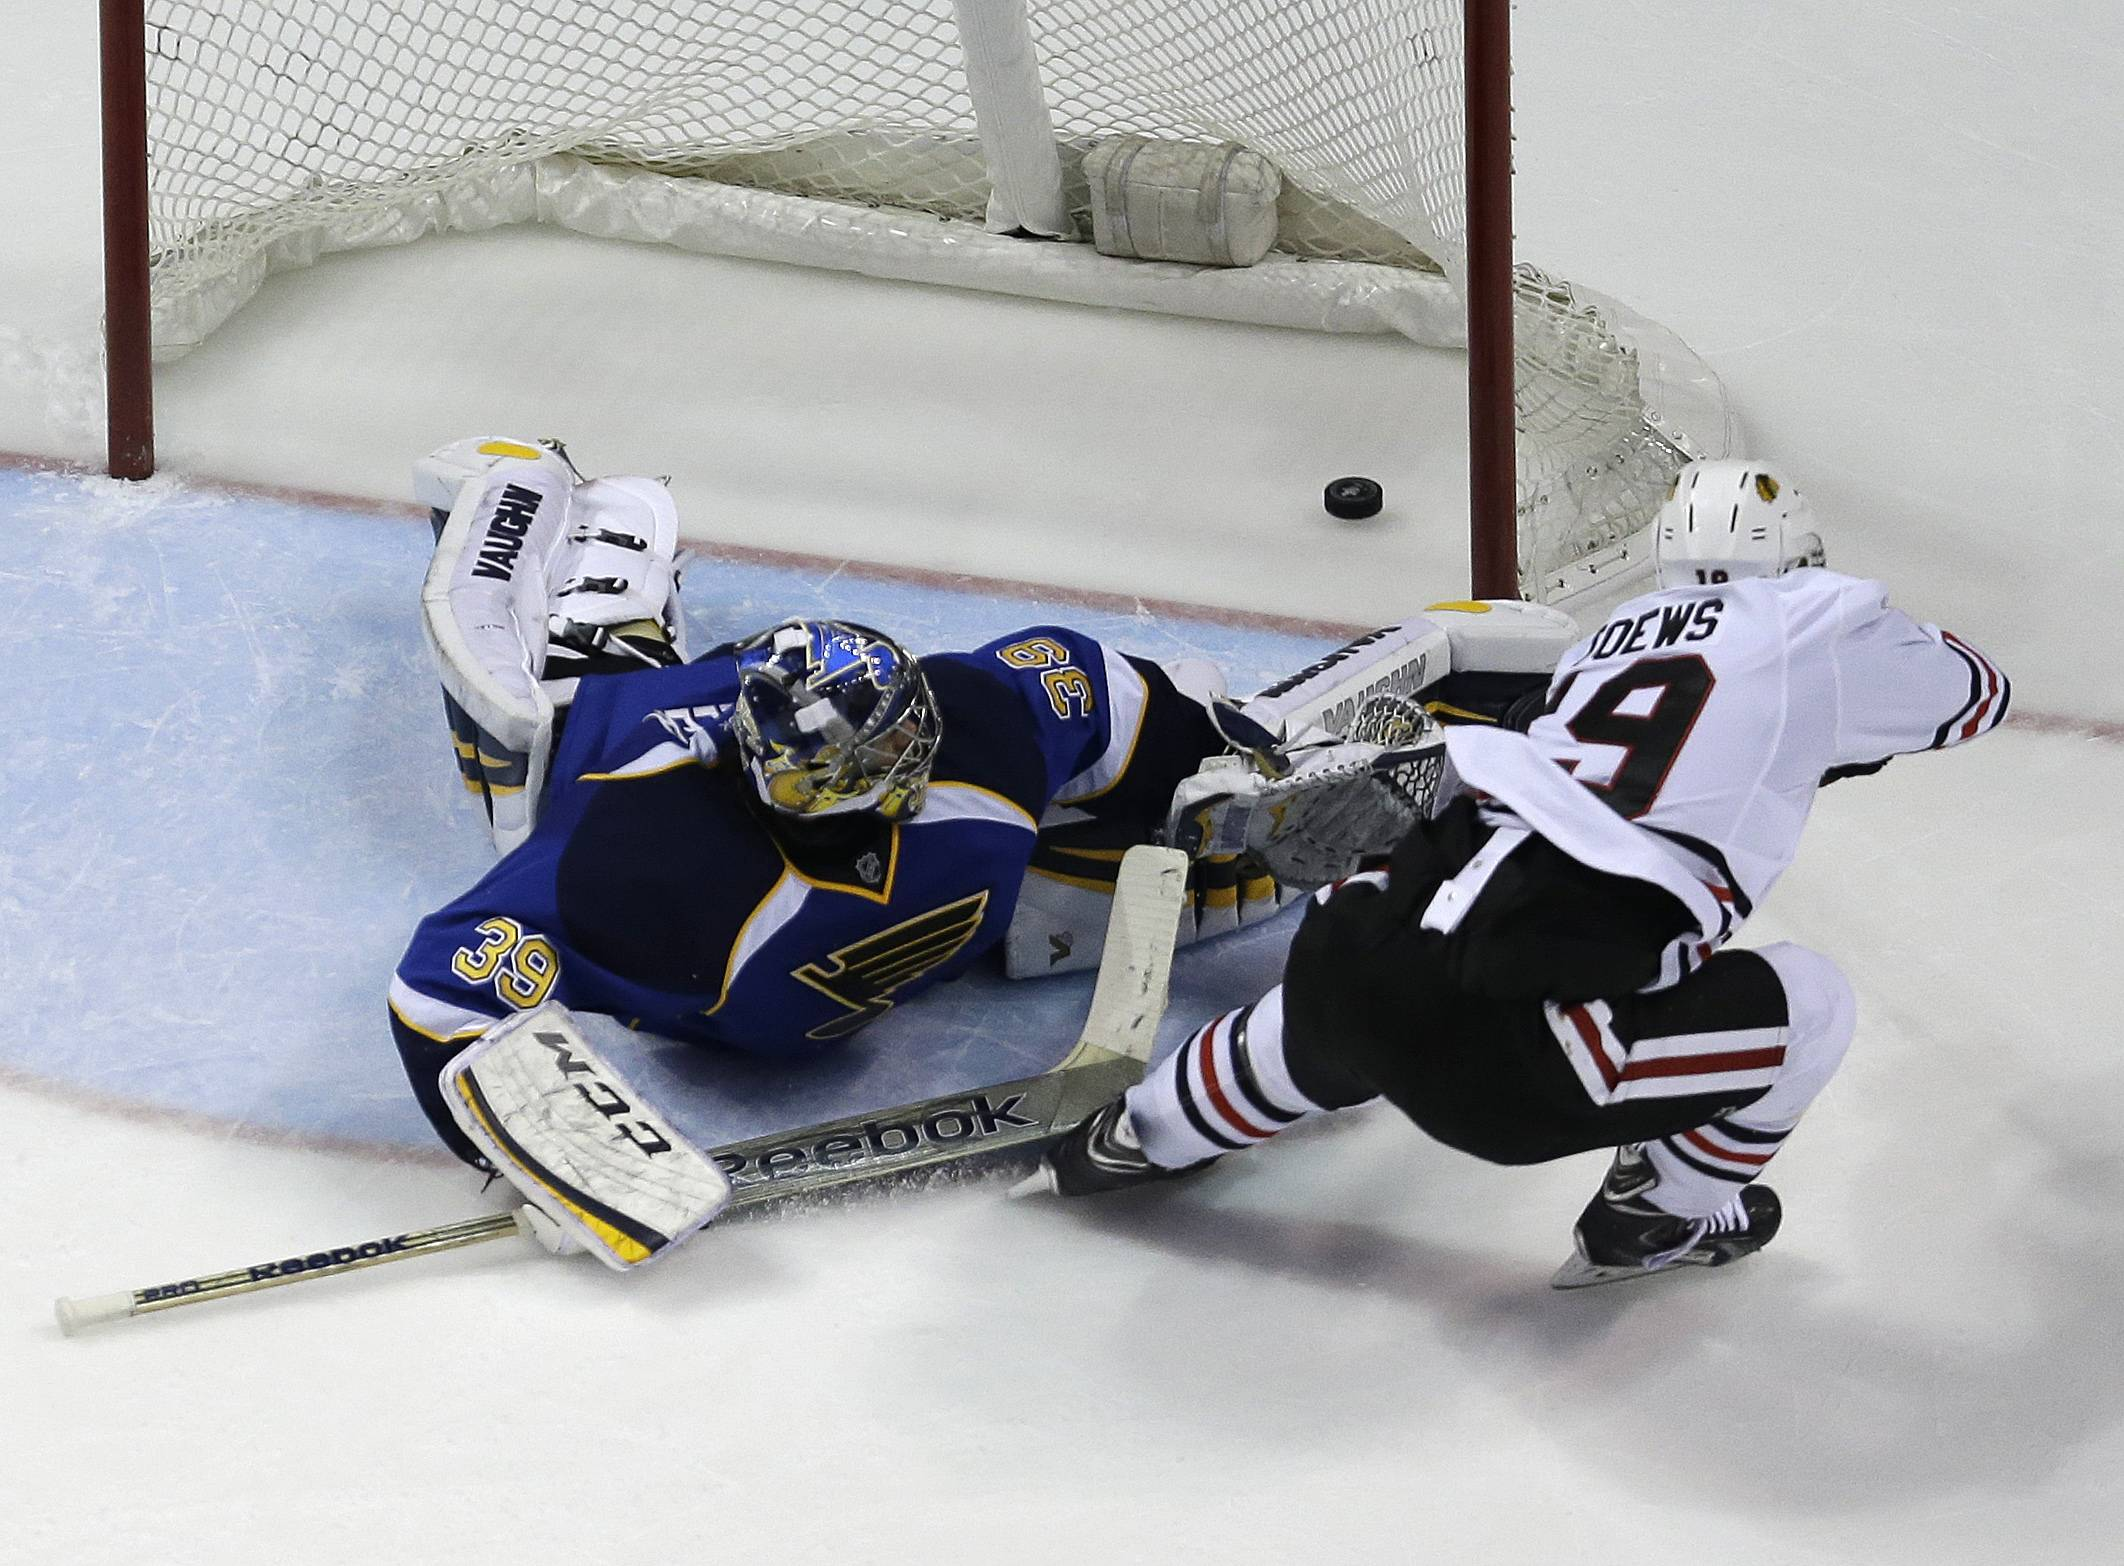 The Blackhawks' Jonathan Toews, right, scores the game-winning goal past St. Louis Blues goalie Ryan Miller during overtime in Game 5 of the first-round NHL hockey playoff series Friday in St. Louis. The Blackhawks won 3-2.